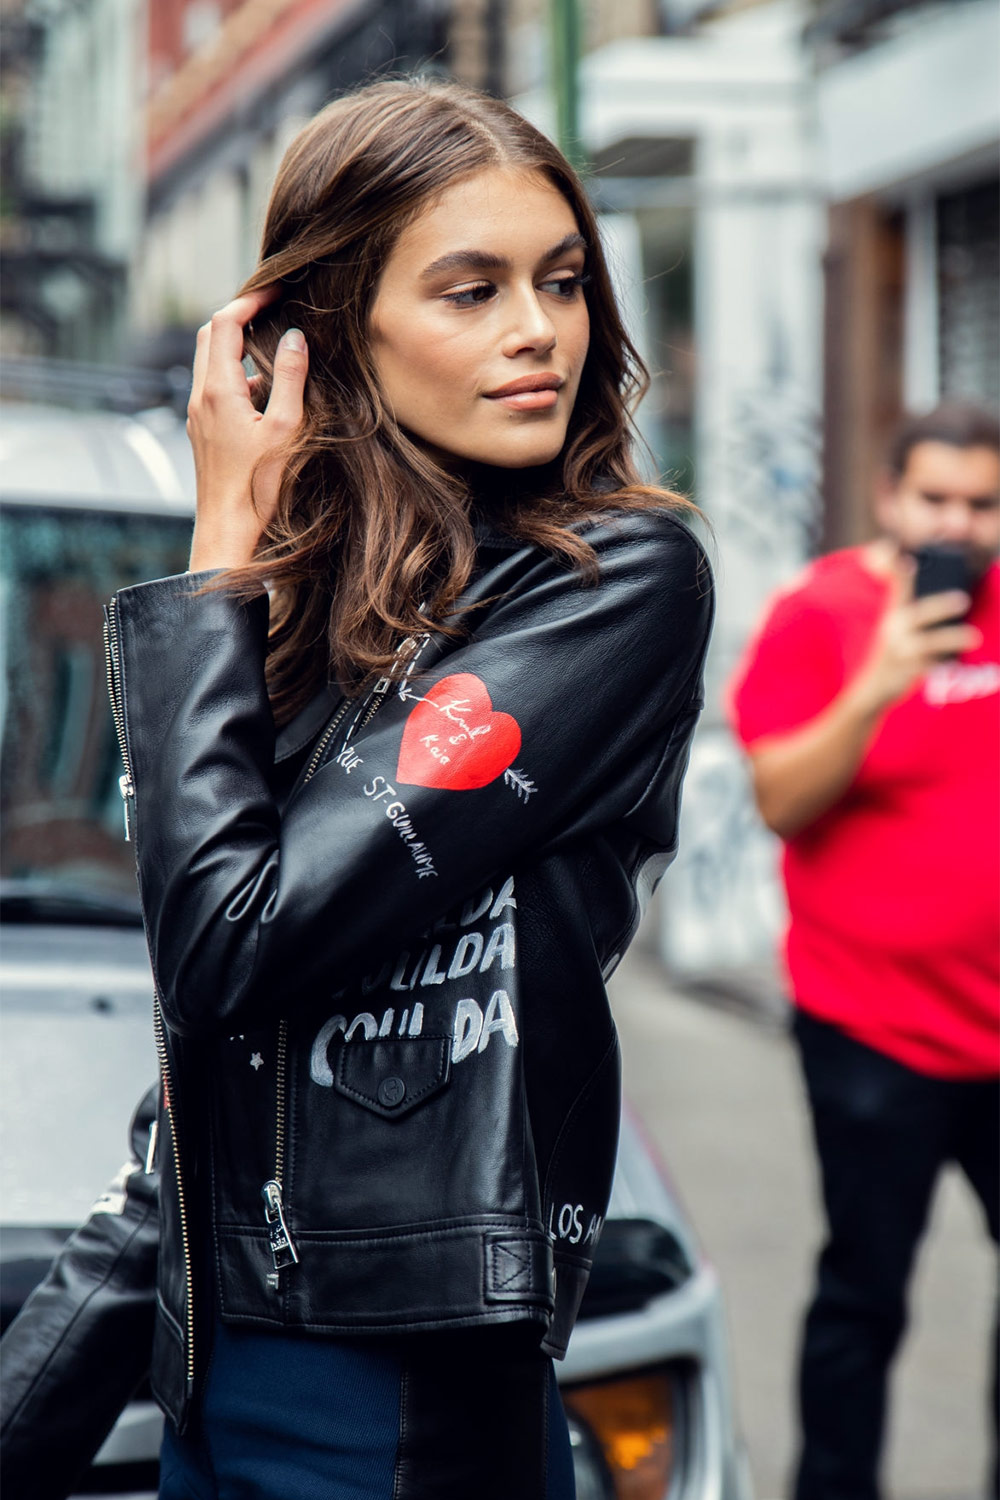 Kaia Gerber seen during New York Fashion Week SS 2019